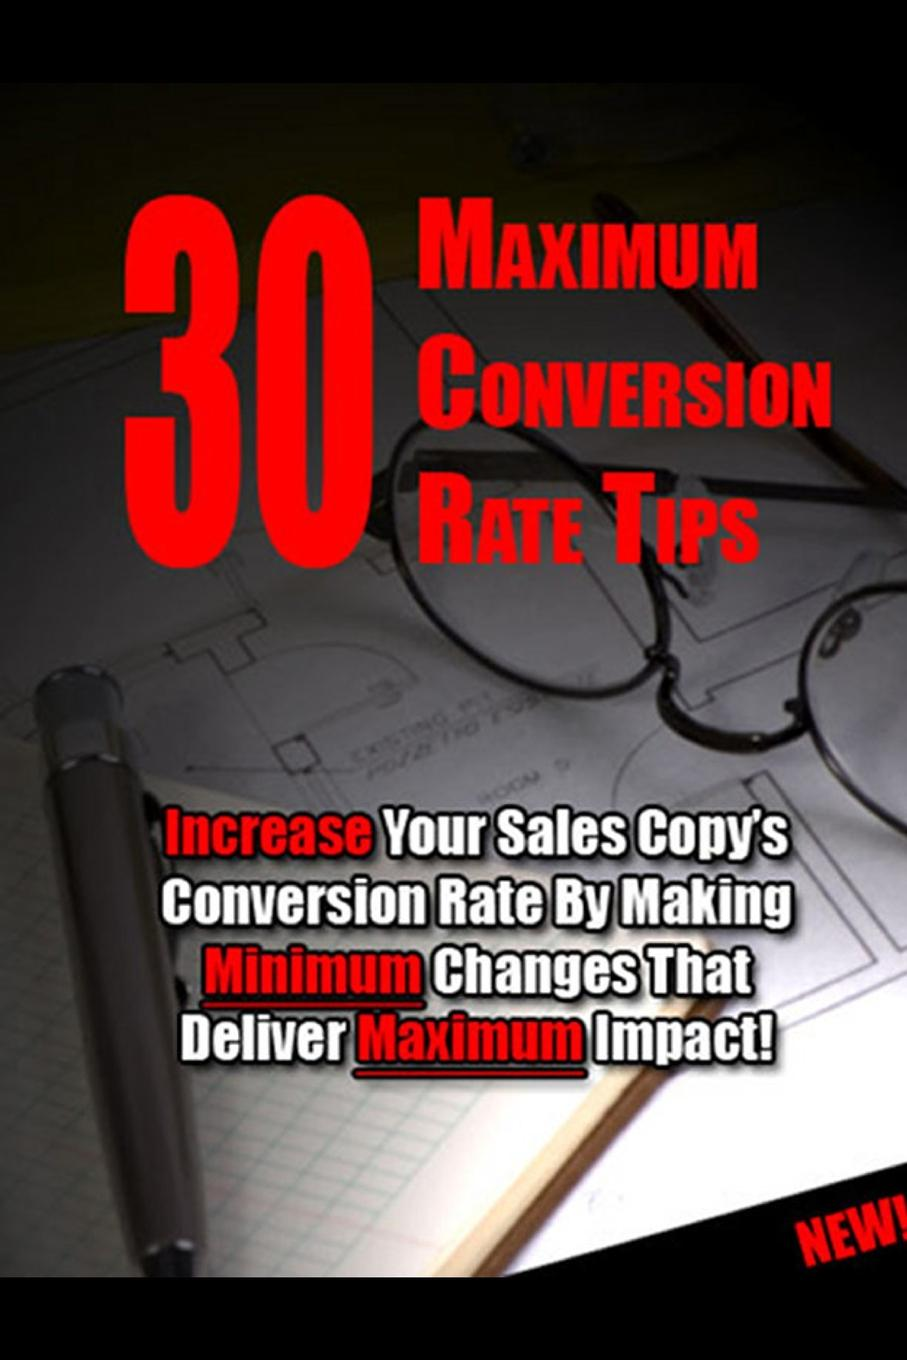 30 Maximum Conversion Rate Tips The use of sales letters had been around for as long as direct...